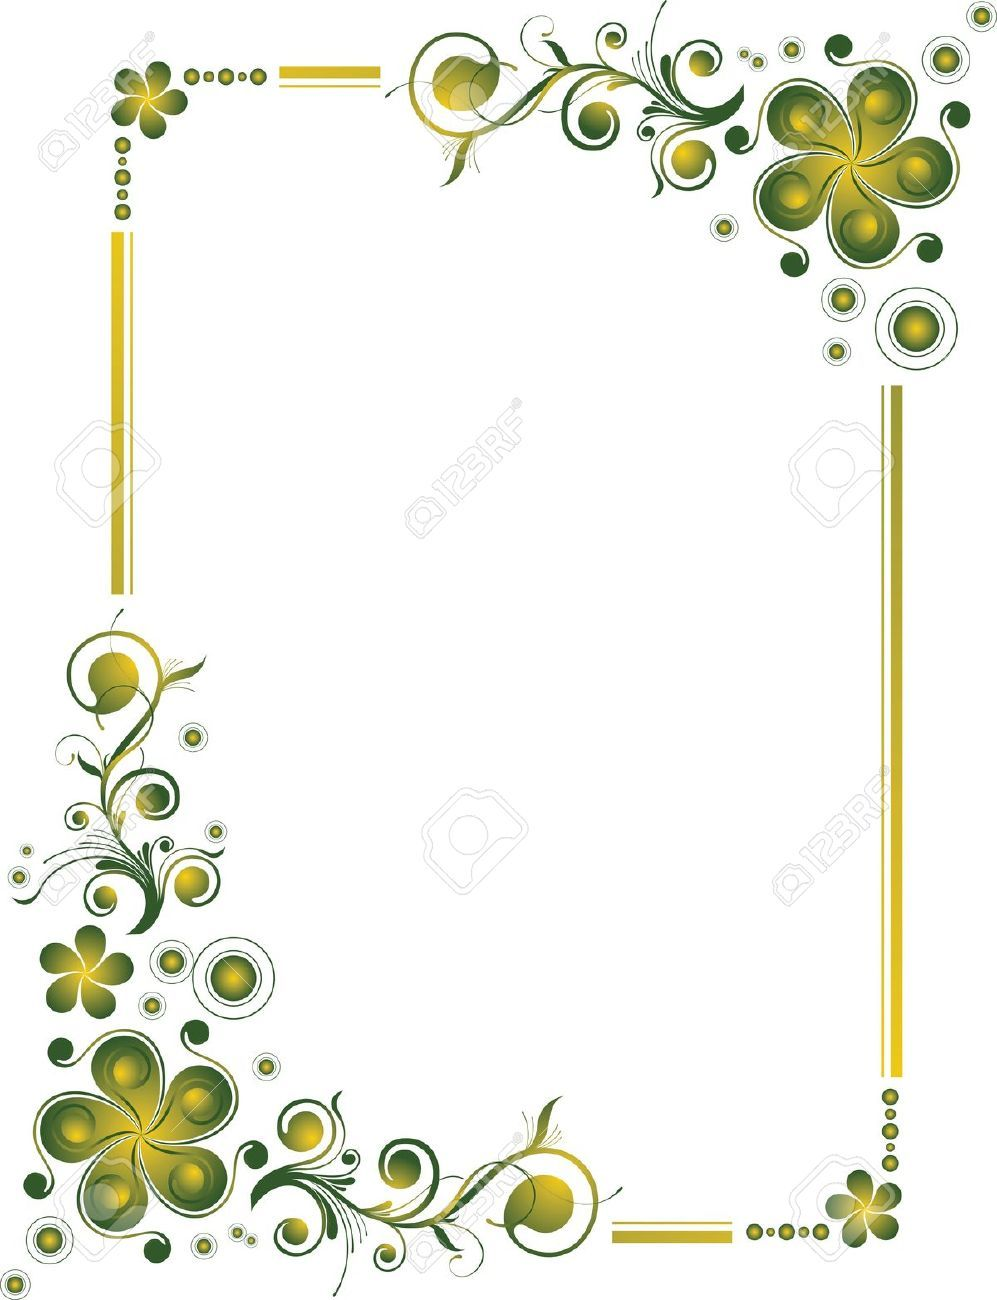 Simple flower designs border